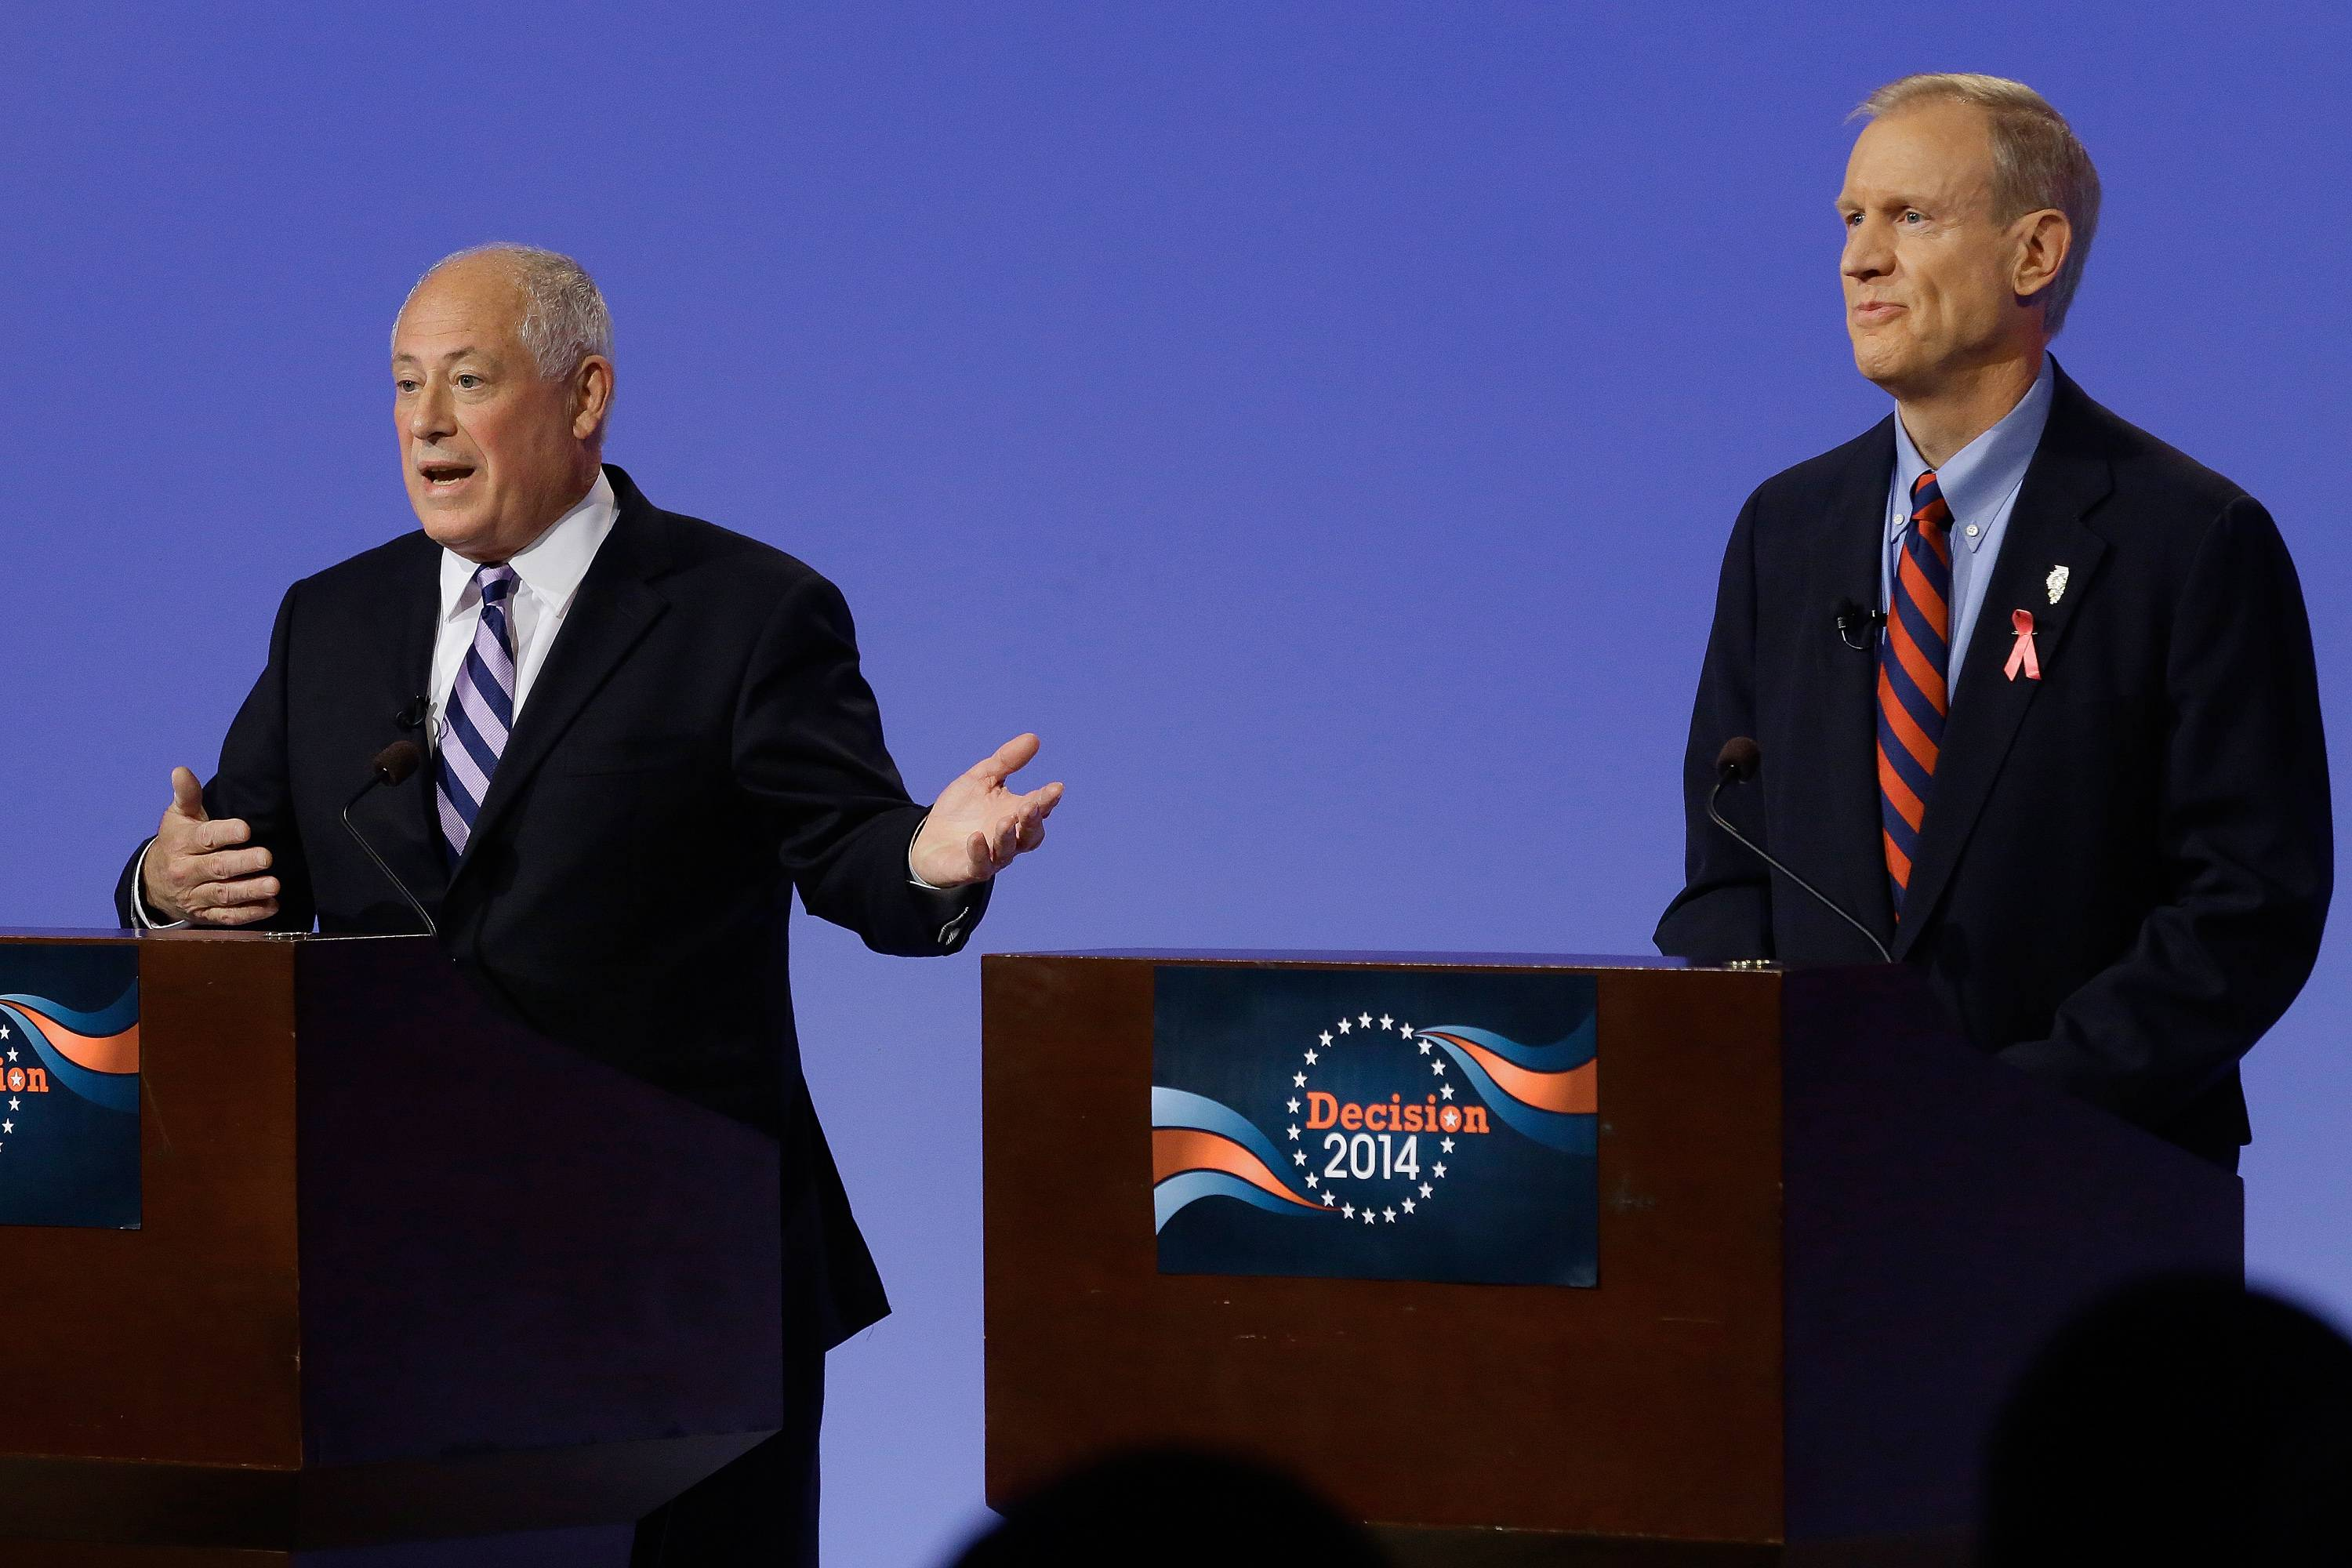 Quinn, Rauner trade barbs on taxes, economy